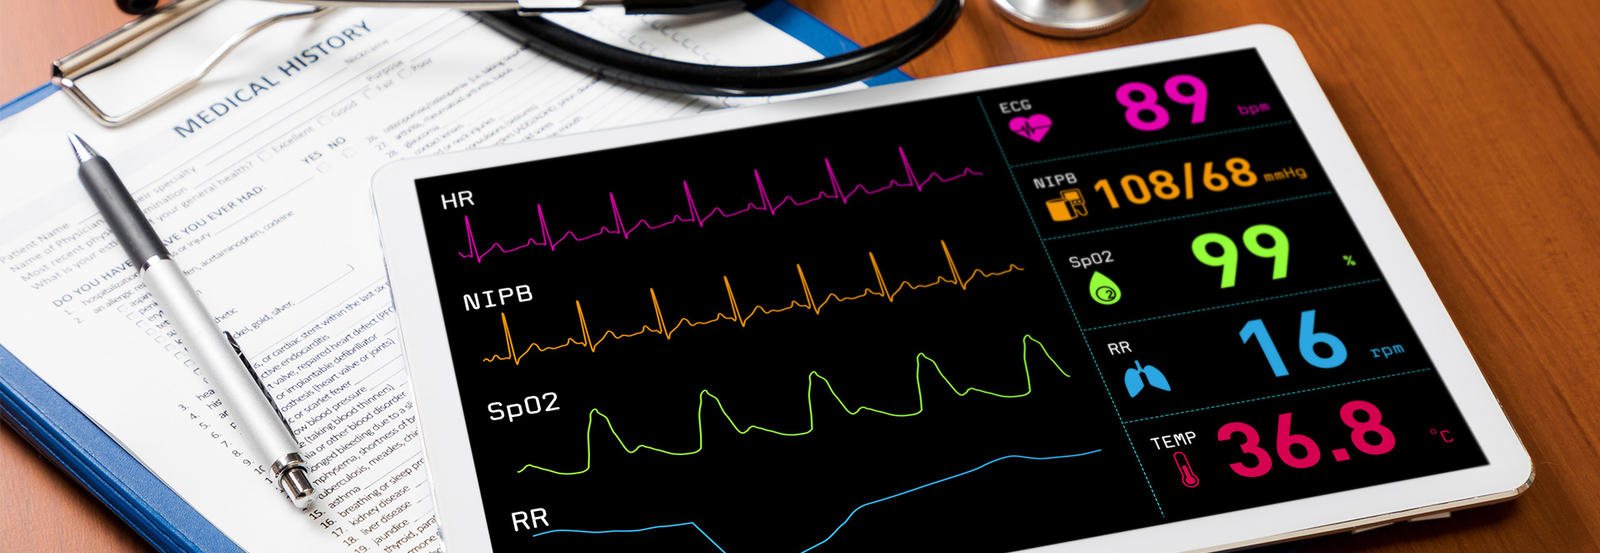 Image of an ipad with heart monitor information on it beside medical tools and clipboard.